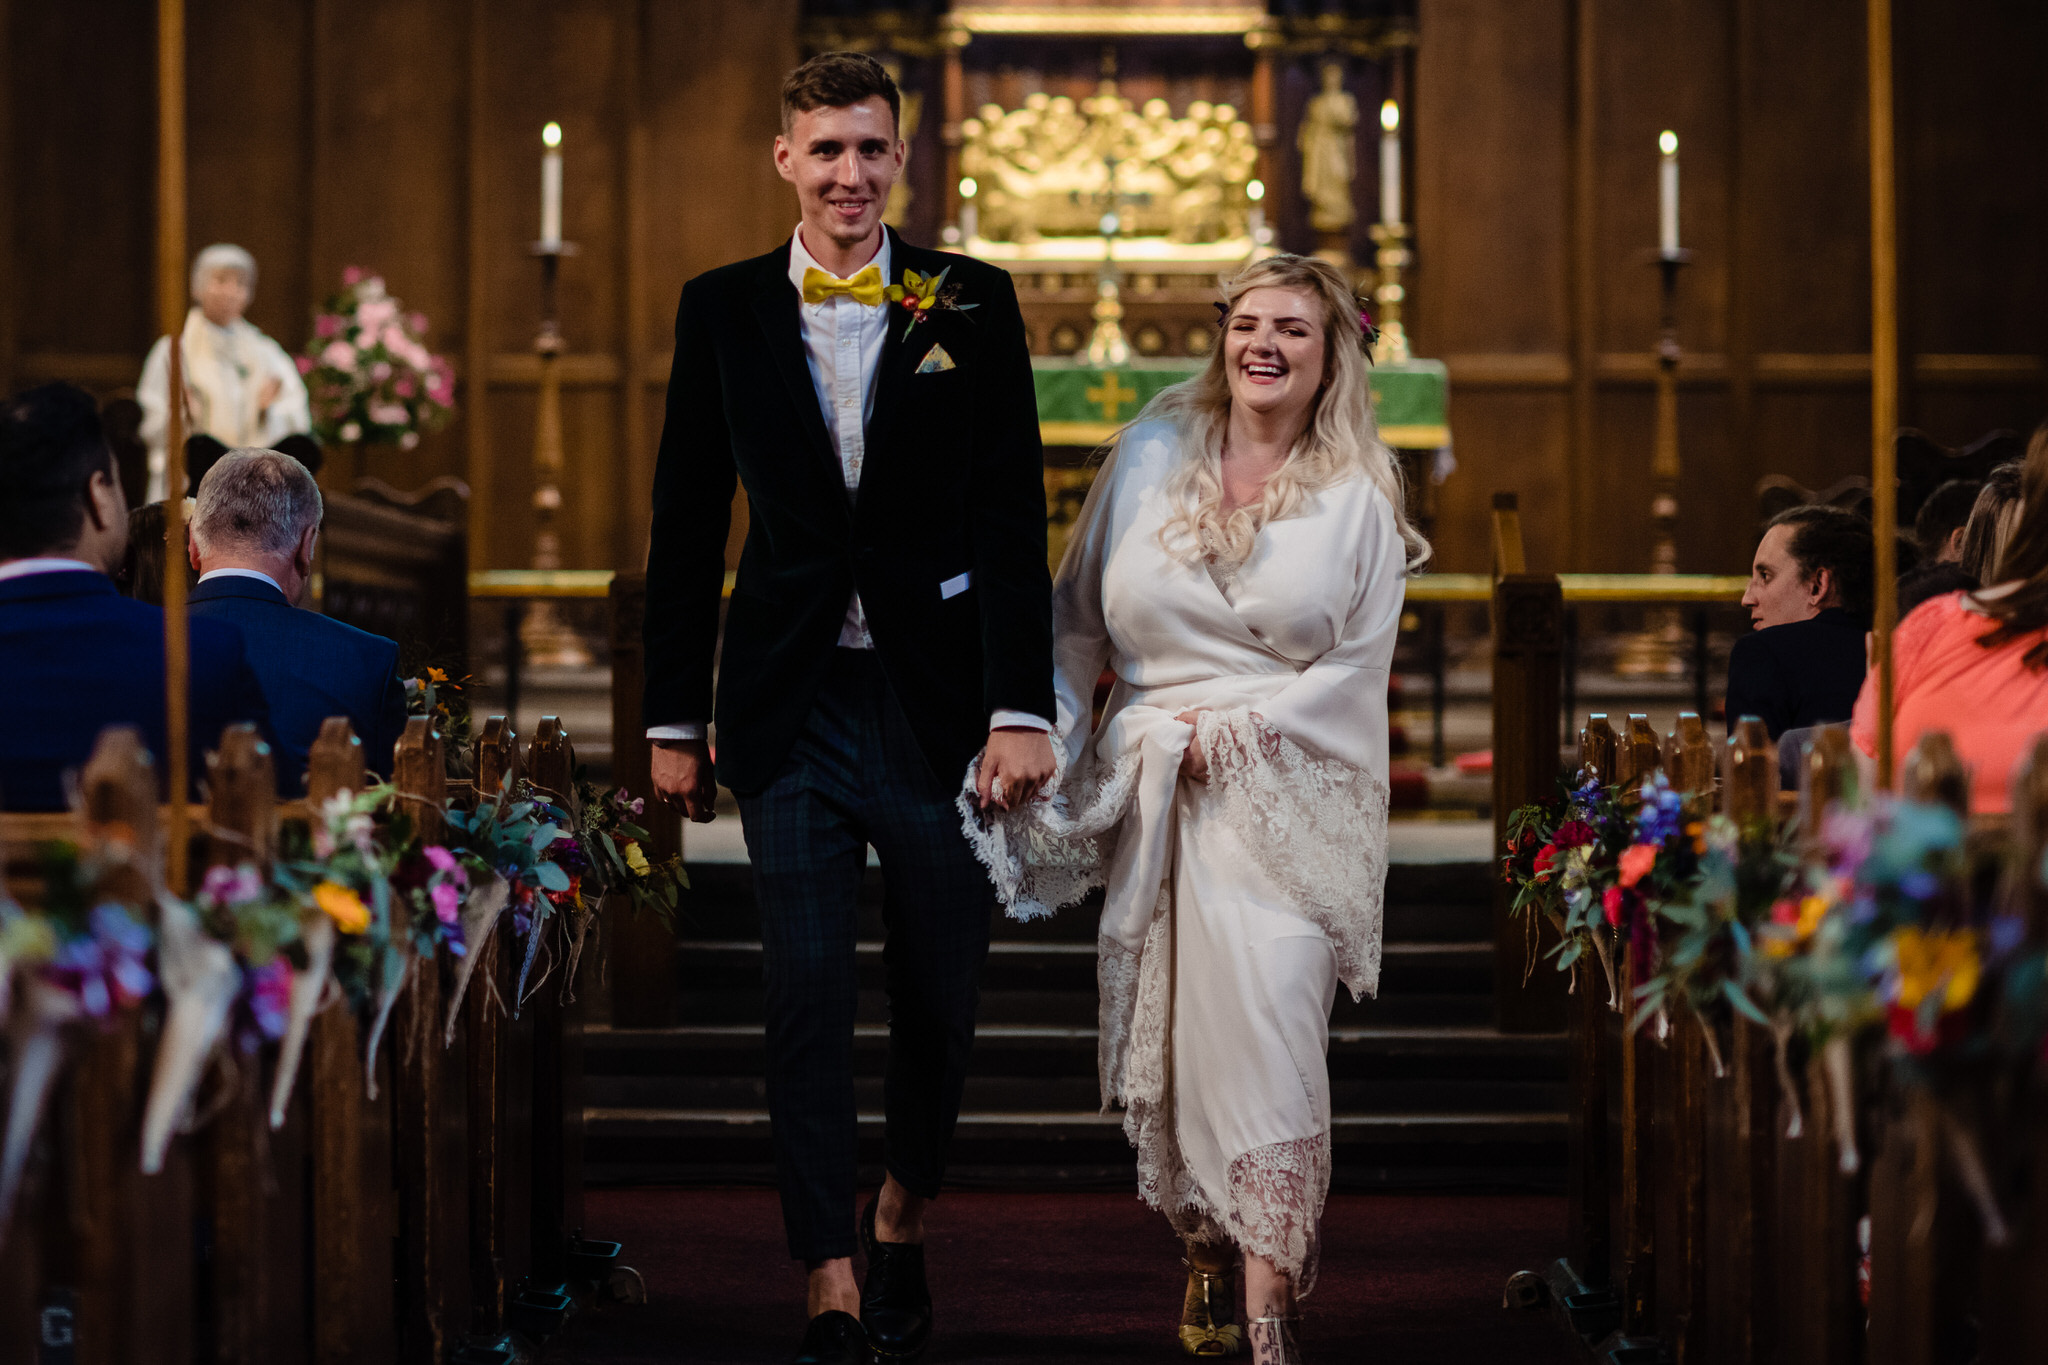 Hagglers corner sheffield wedding by simon biffen 18